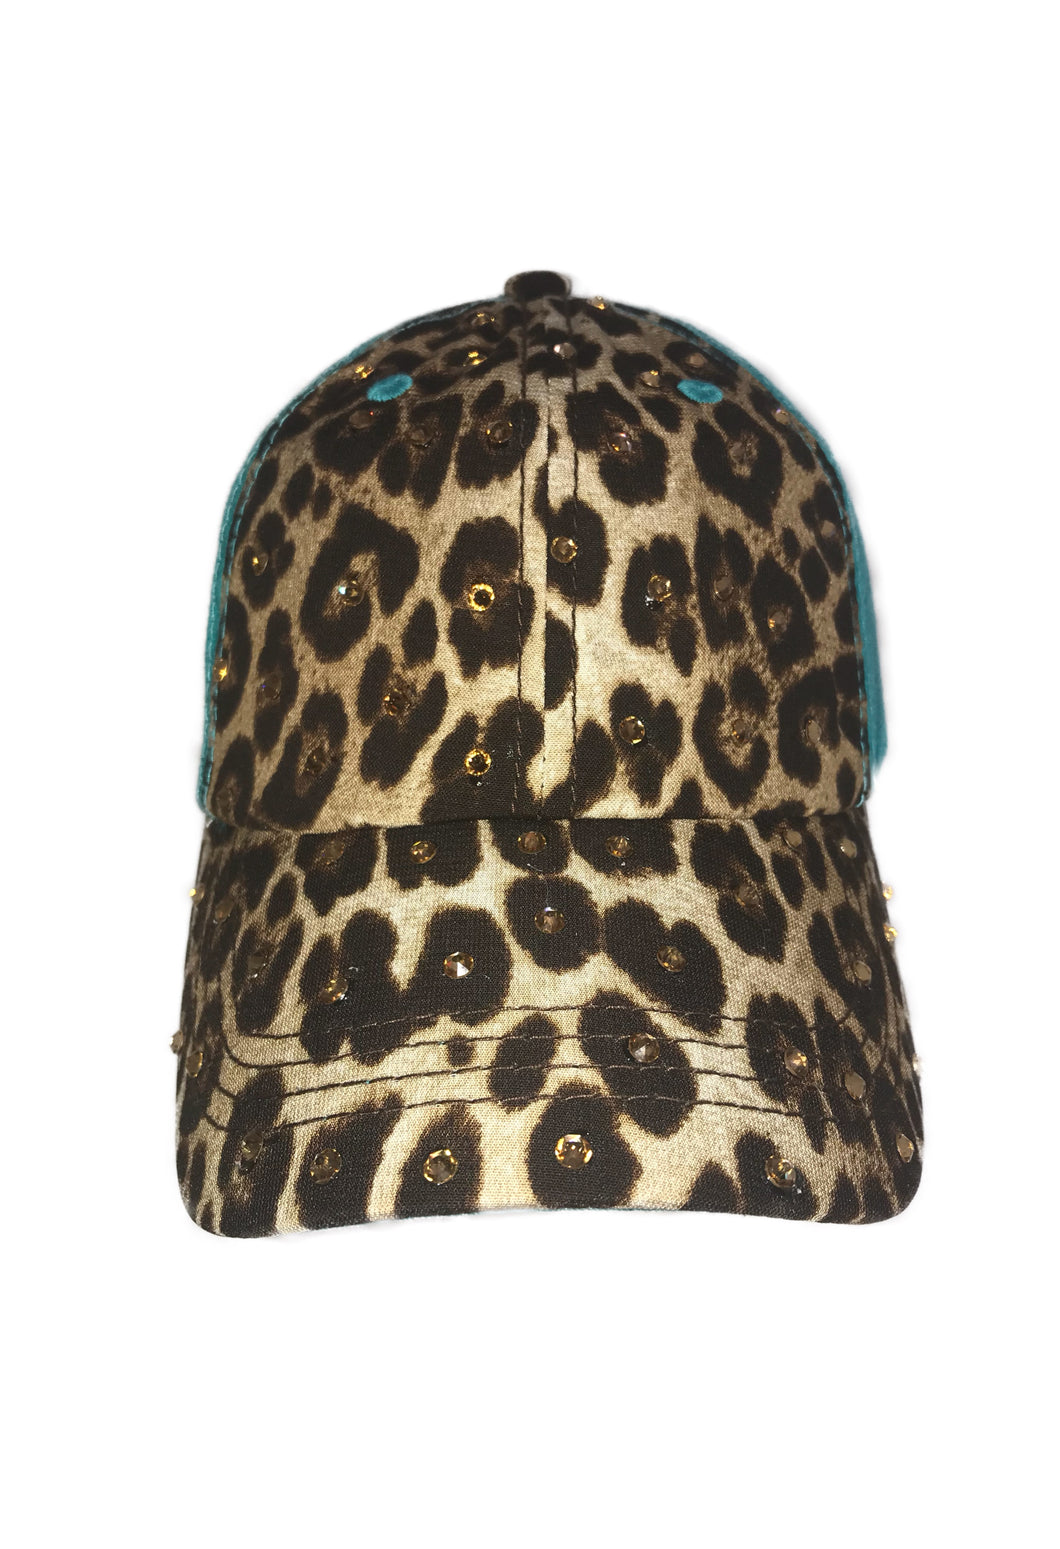 Leopard Ponytail Hat - Turquoise Back